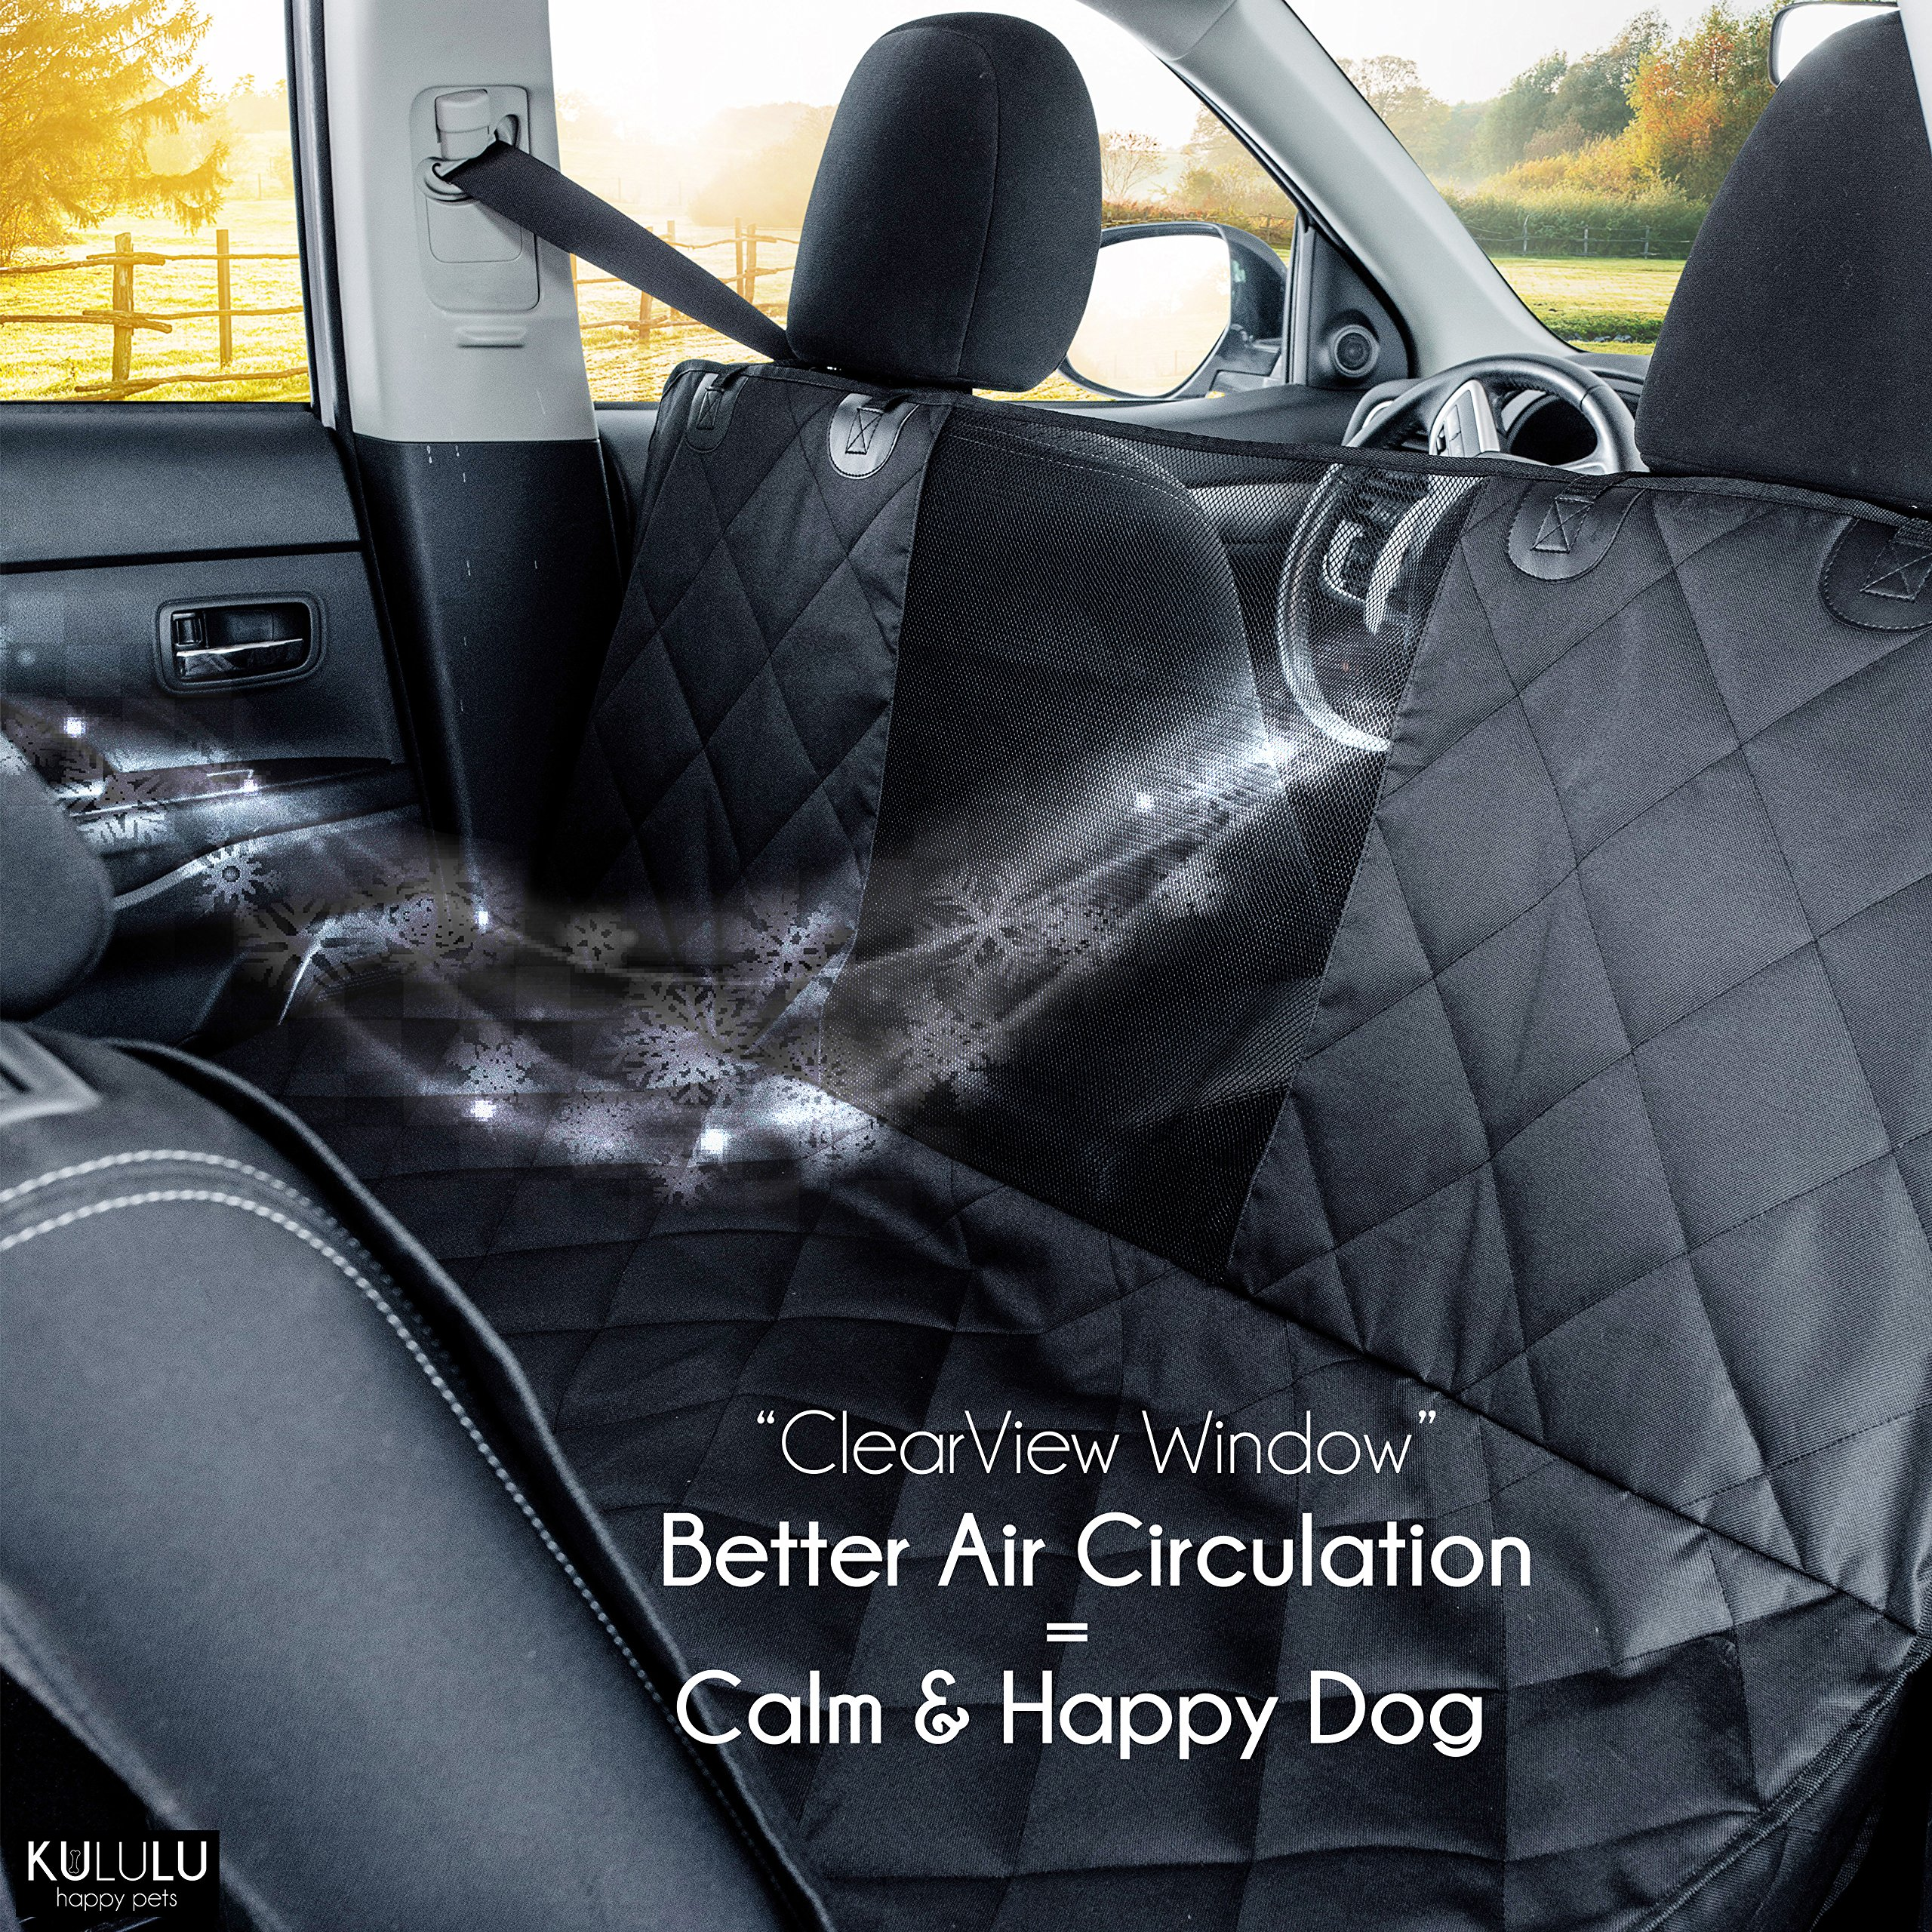 PREMIUM XL Dog Car Seat Cover Hammock Style And Cargo Liner For Cars, Trucks And Suv's. The Original Design You Can See Your Pet & Your Pet Sees You with the ClearView Window- Keeps Your Pet Calm. by Kululu (Image #3)